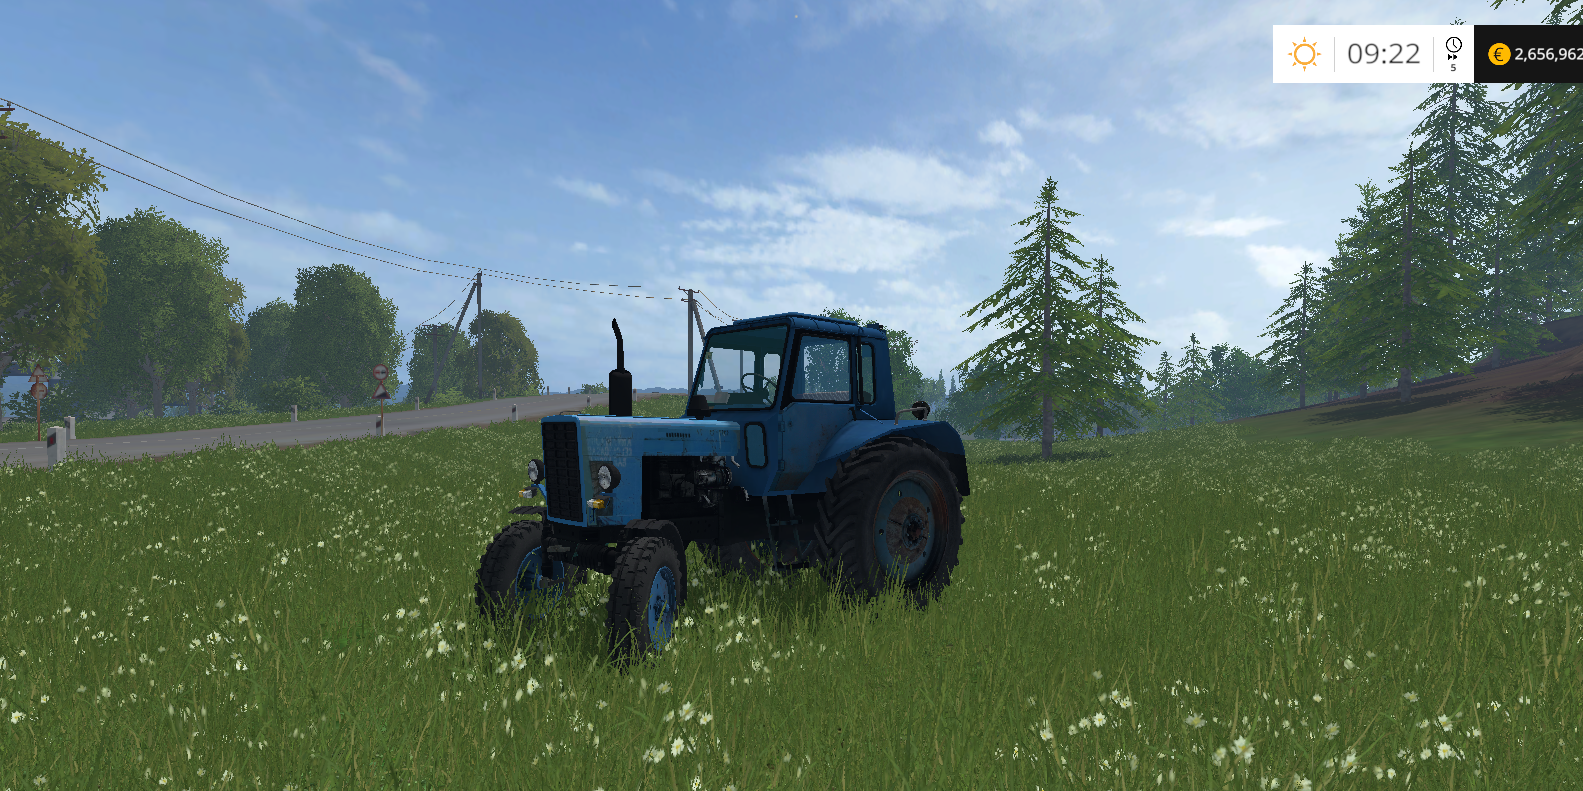 1452700492_1452678491_farmingsimulator2015game-2016-01-13-08-44-11-69